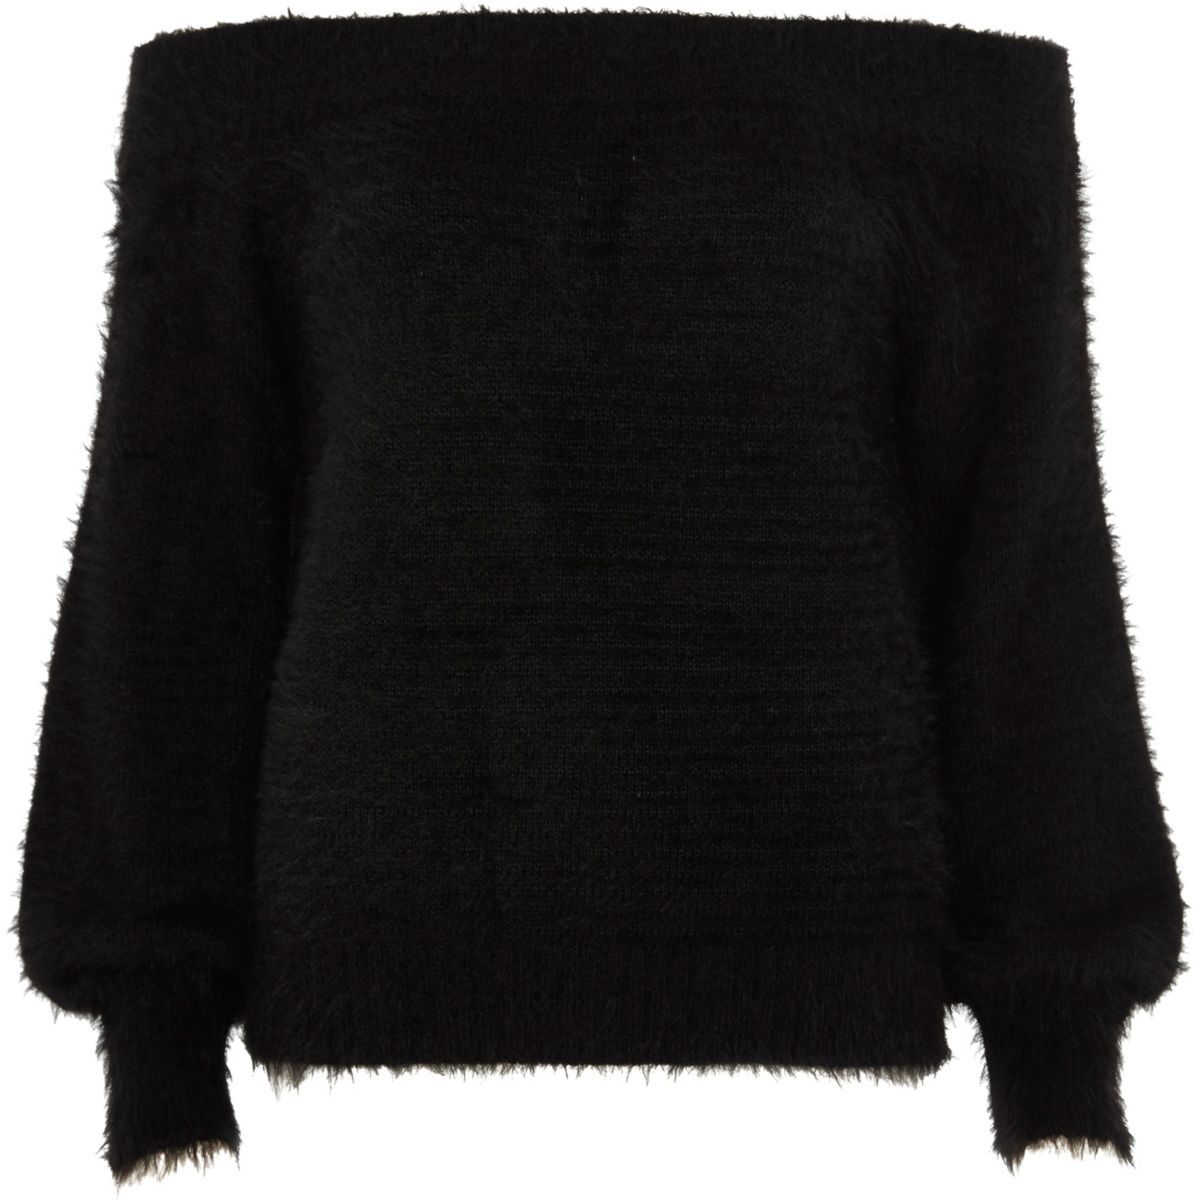 Black bardot fluffy knit jumper